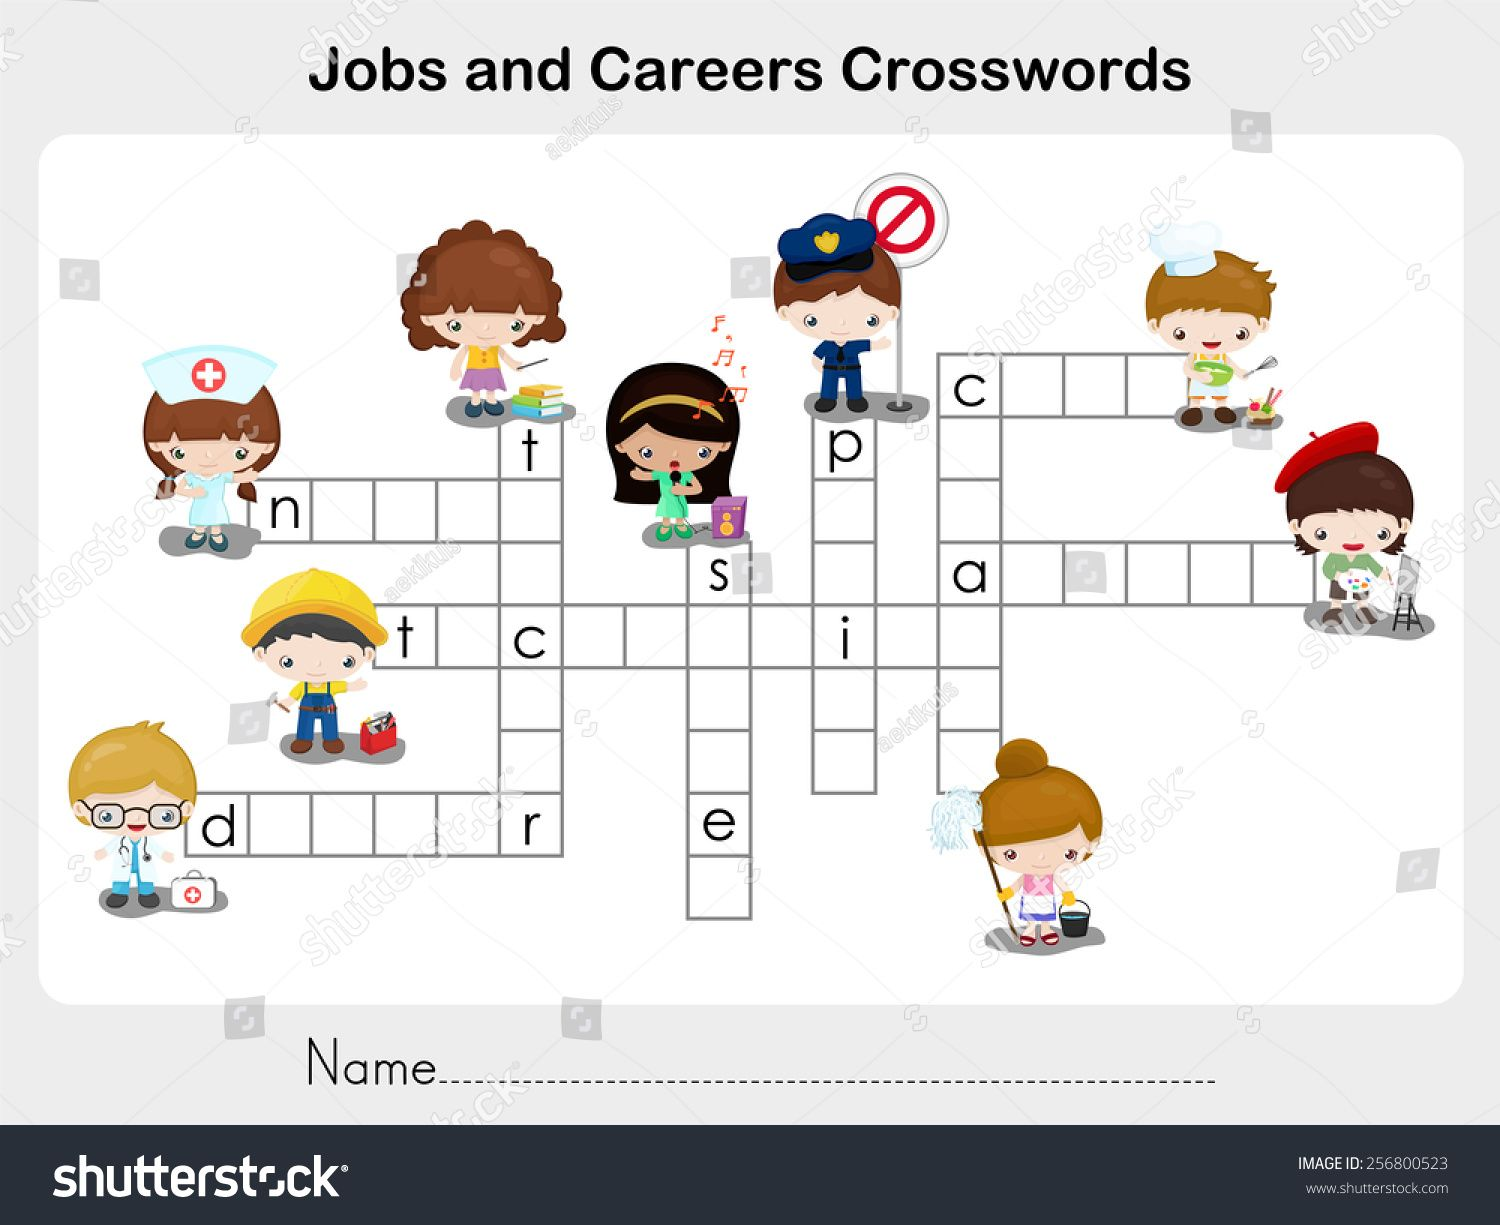 Jobs And Careers Crosswords